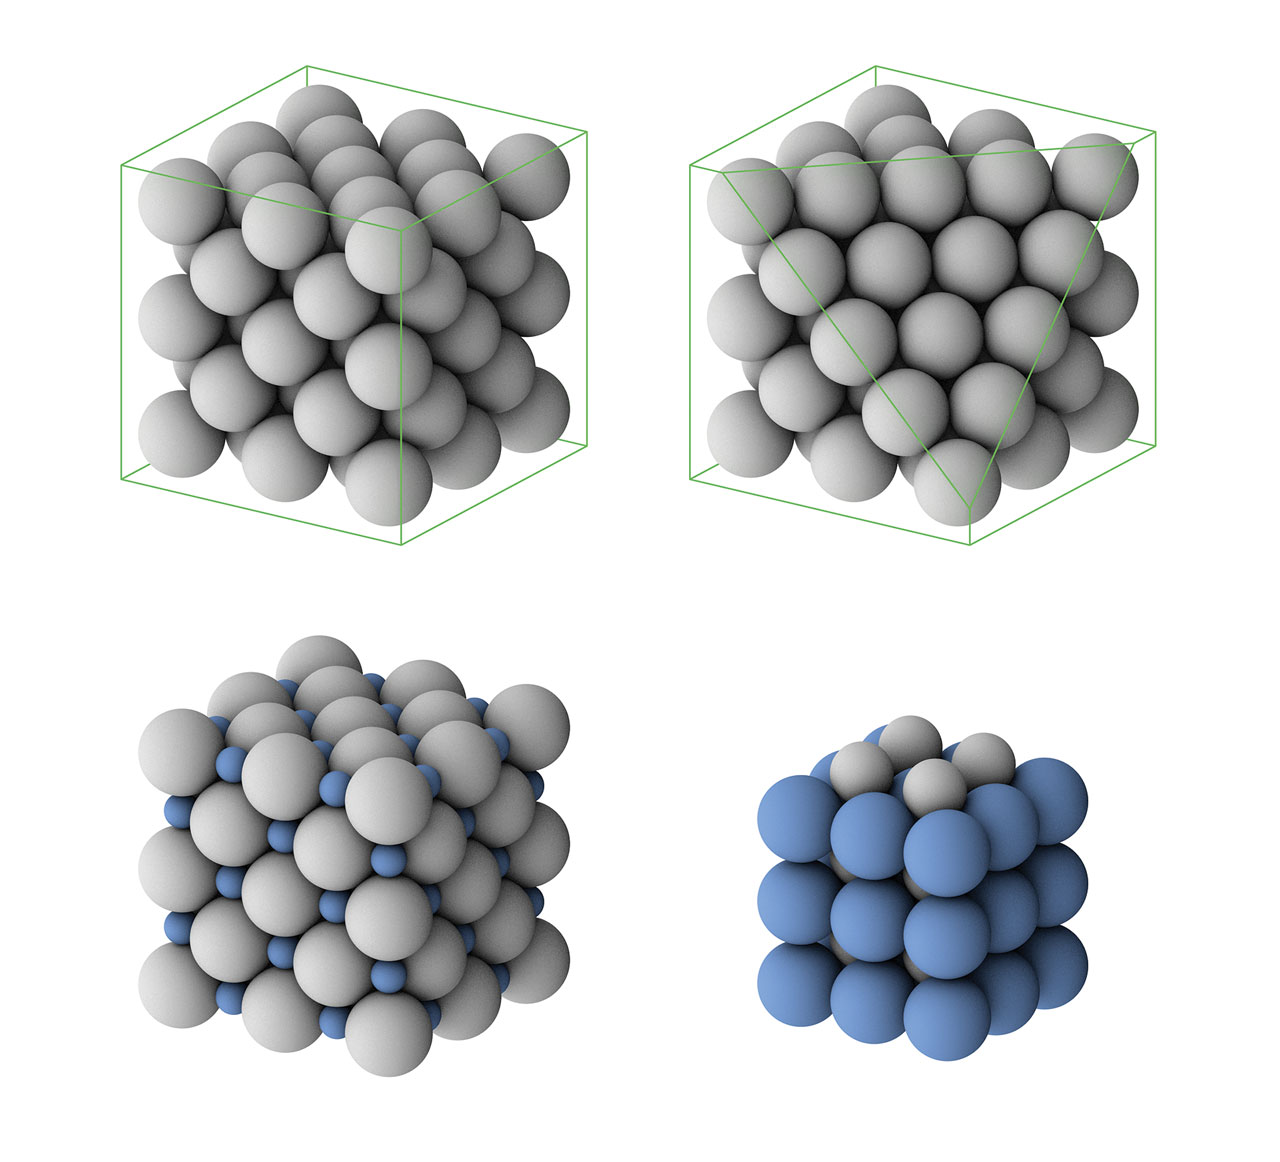 hight resolution of top row one type of close packed structure of equal spheres bottom row